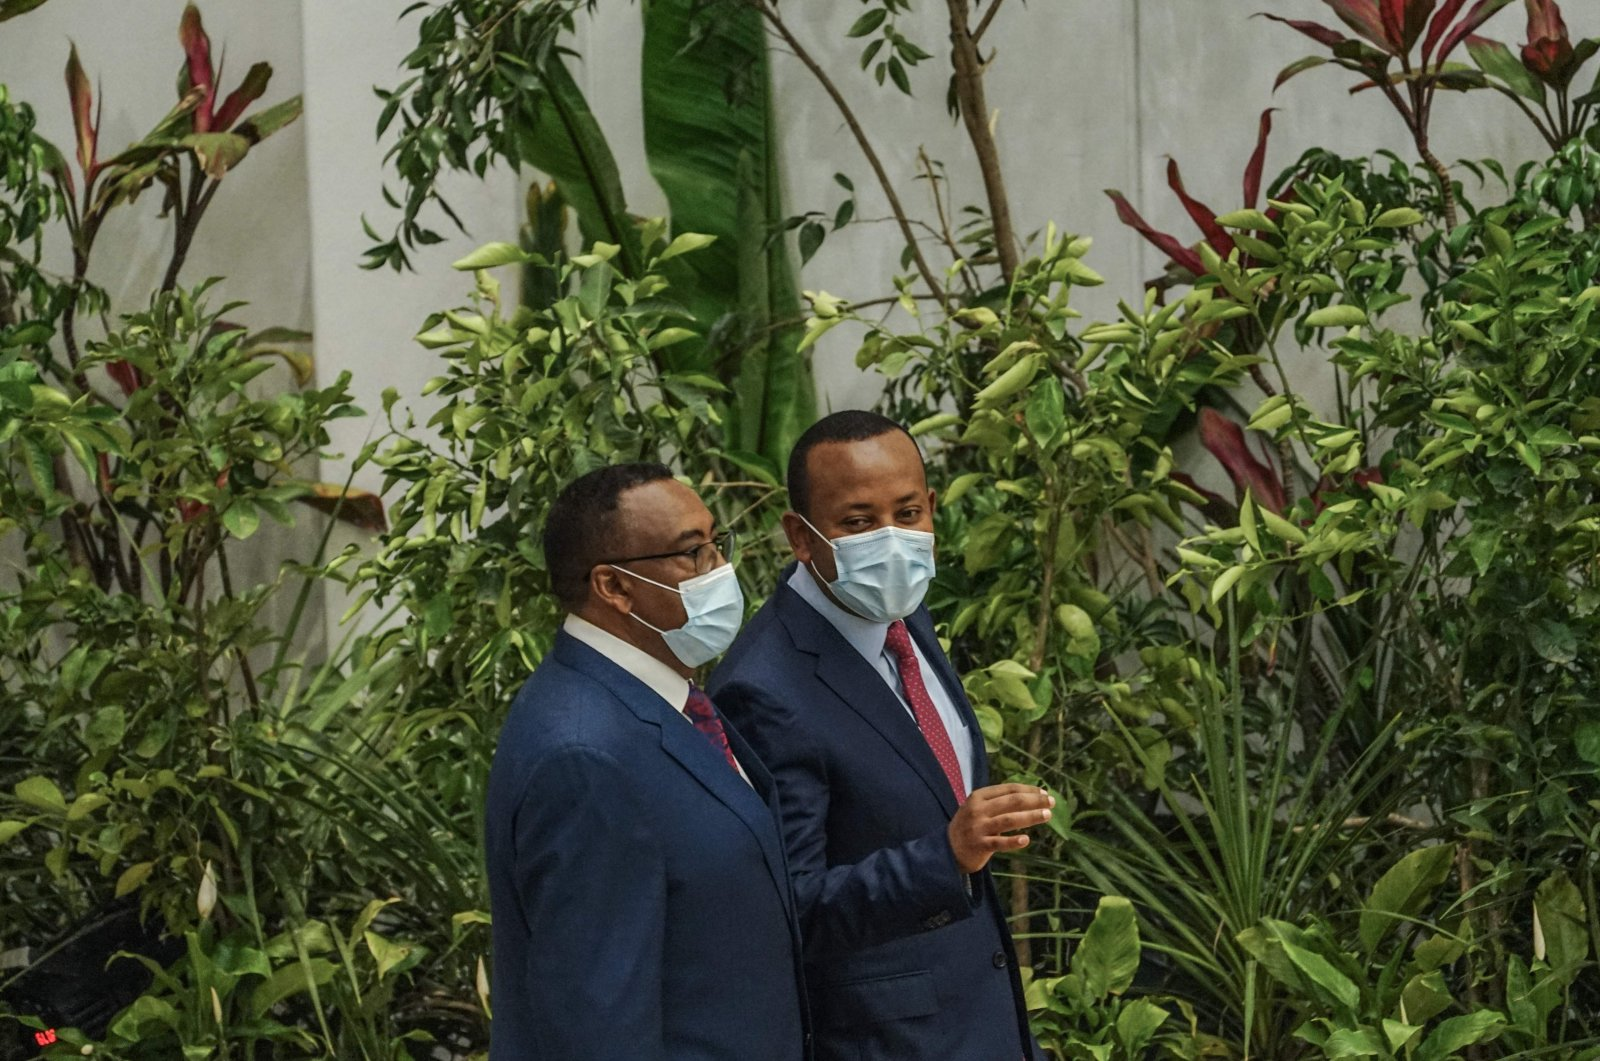 """Ethiopian Prime Minister Abiy Ahmed (R) speaks with Deputy Prime Minister Demeke Mekonen during the launch of his """"Green Legacy"""" initiative, where a hall of the Prime Minister's office temporarily transformed into a green garden, Addis Ababa, Ethiopia, May 18, 2021.  (AFP Photo)"""